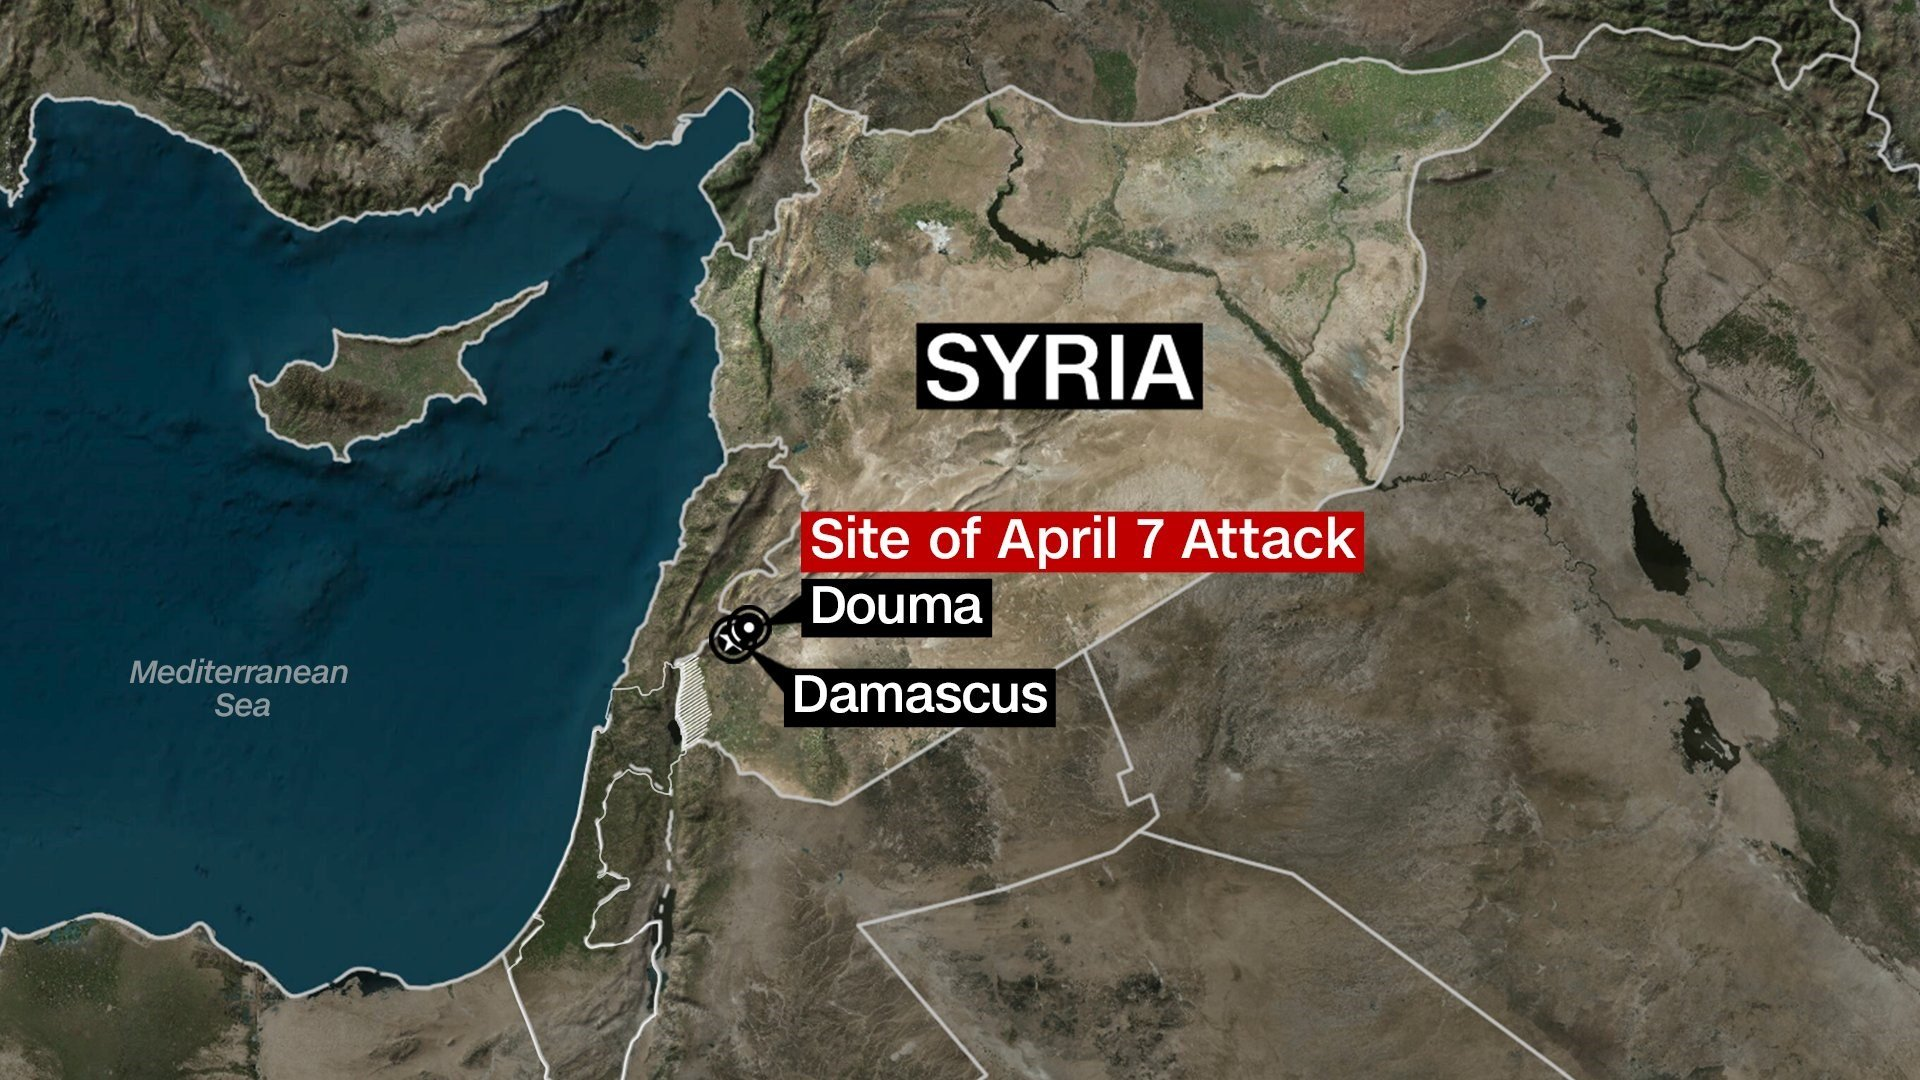 President Donald Trump announced on Friday he ordered strikes on the Syrian regime in response to a chemical weapons attack last weekend.